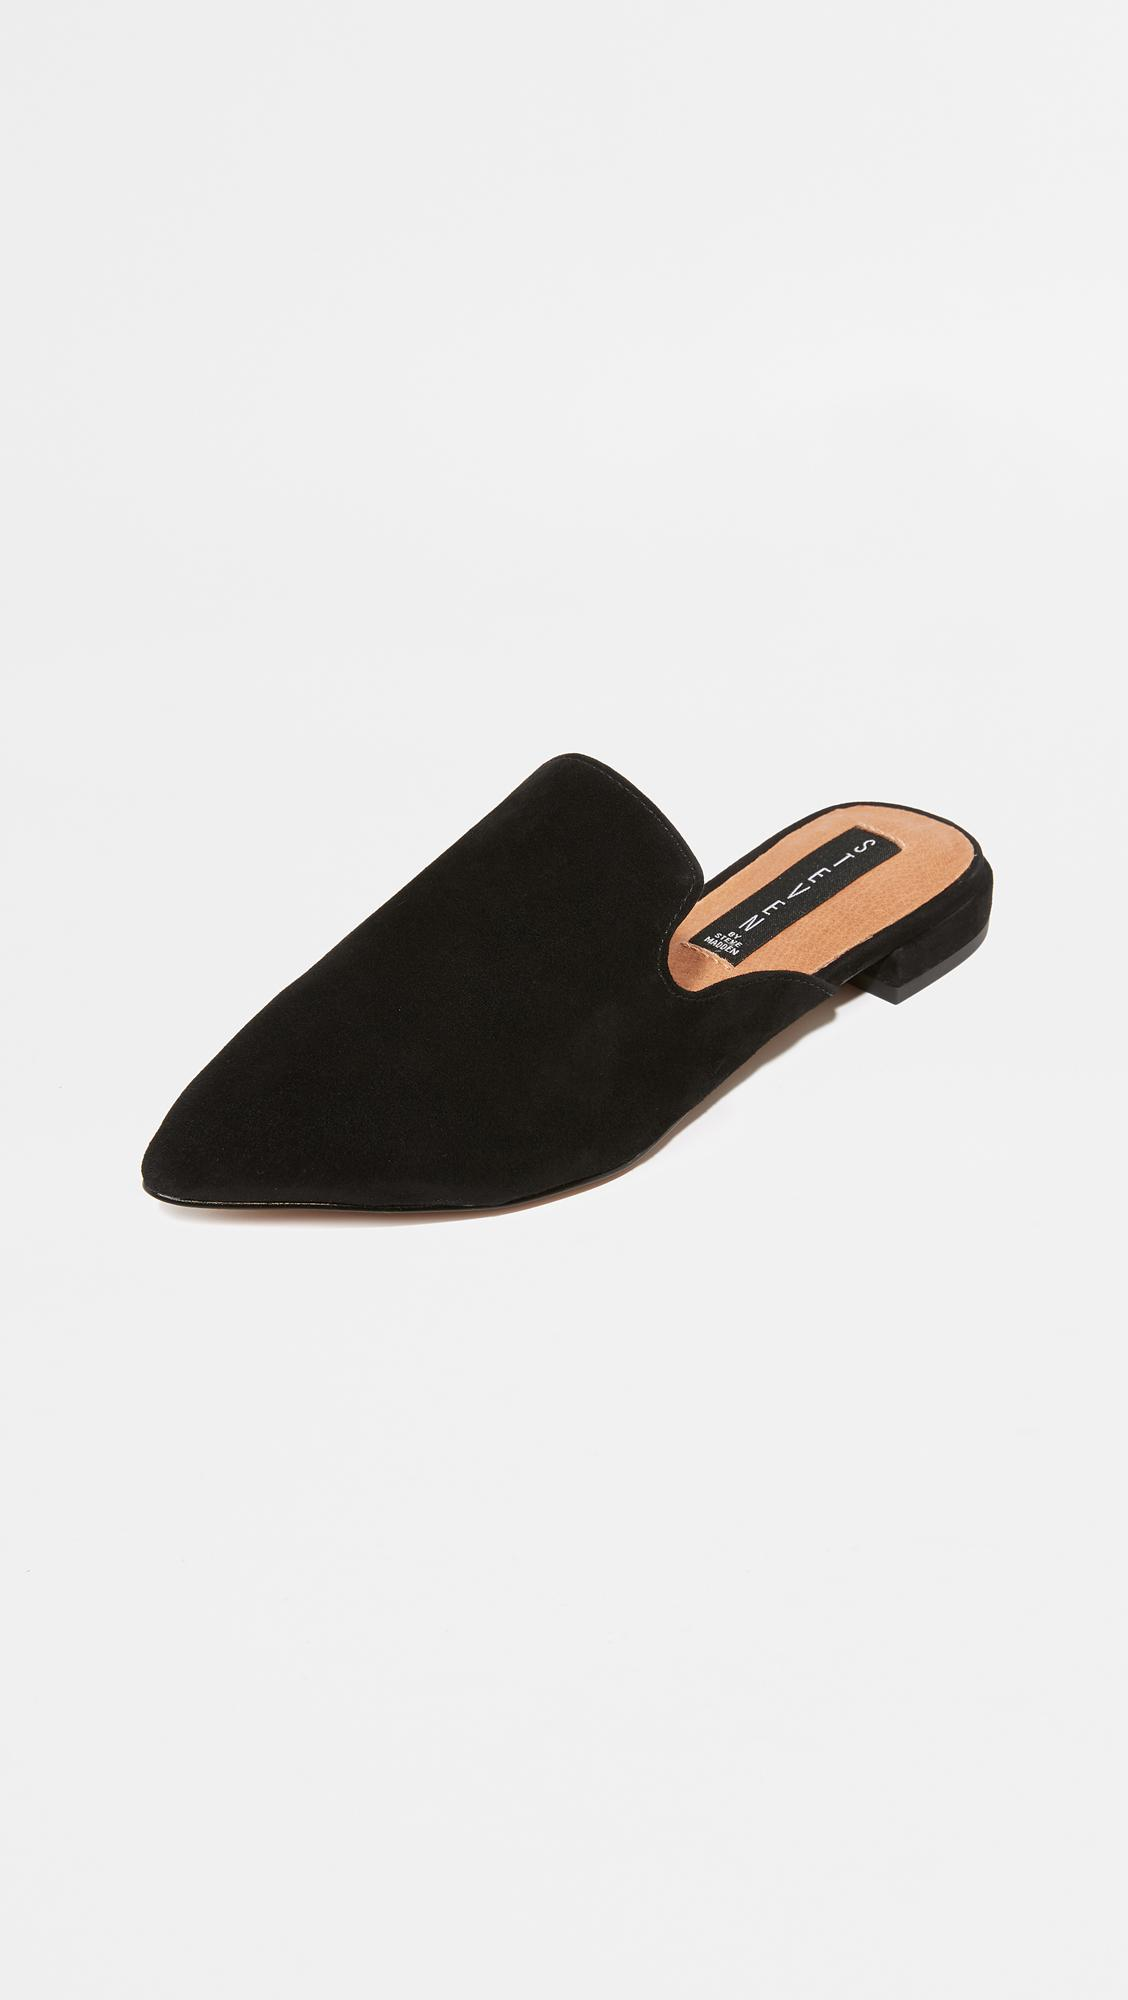 Steven by Steve Madden Valent Suede Mules OTRXulF